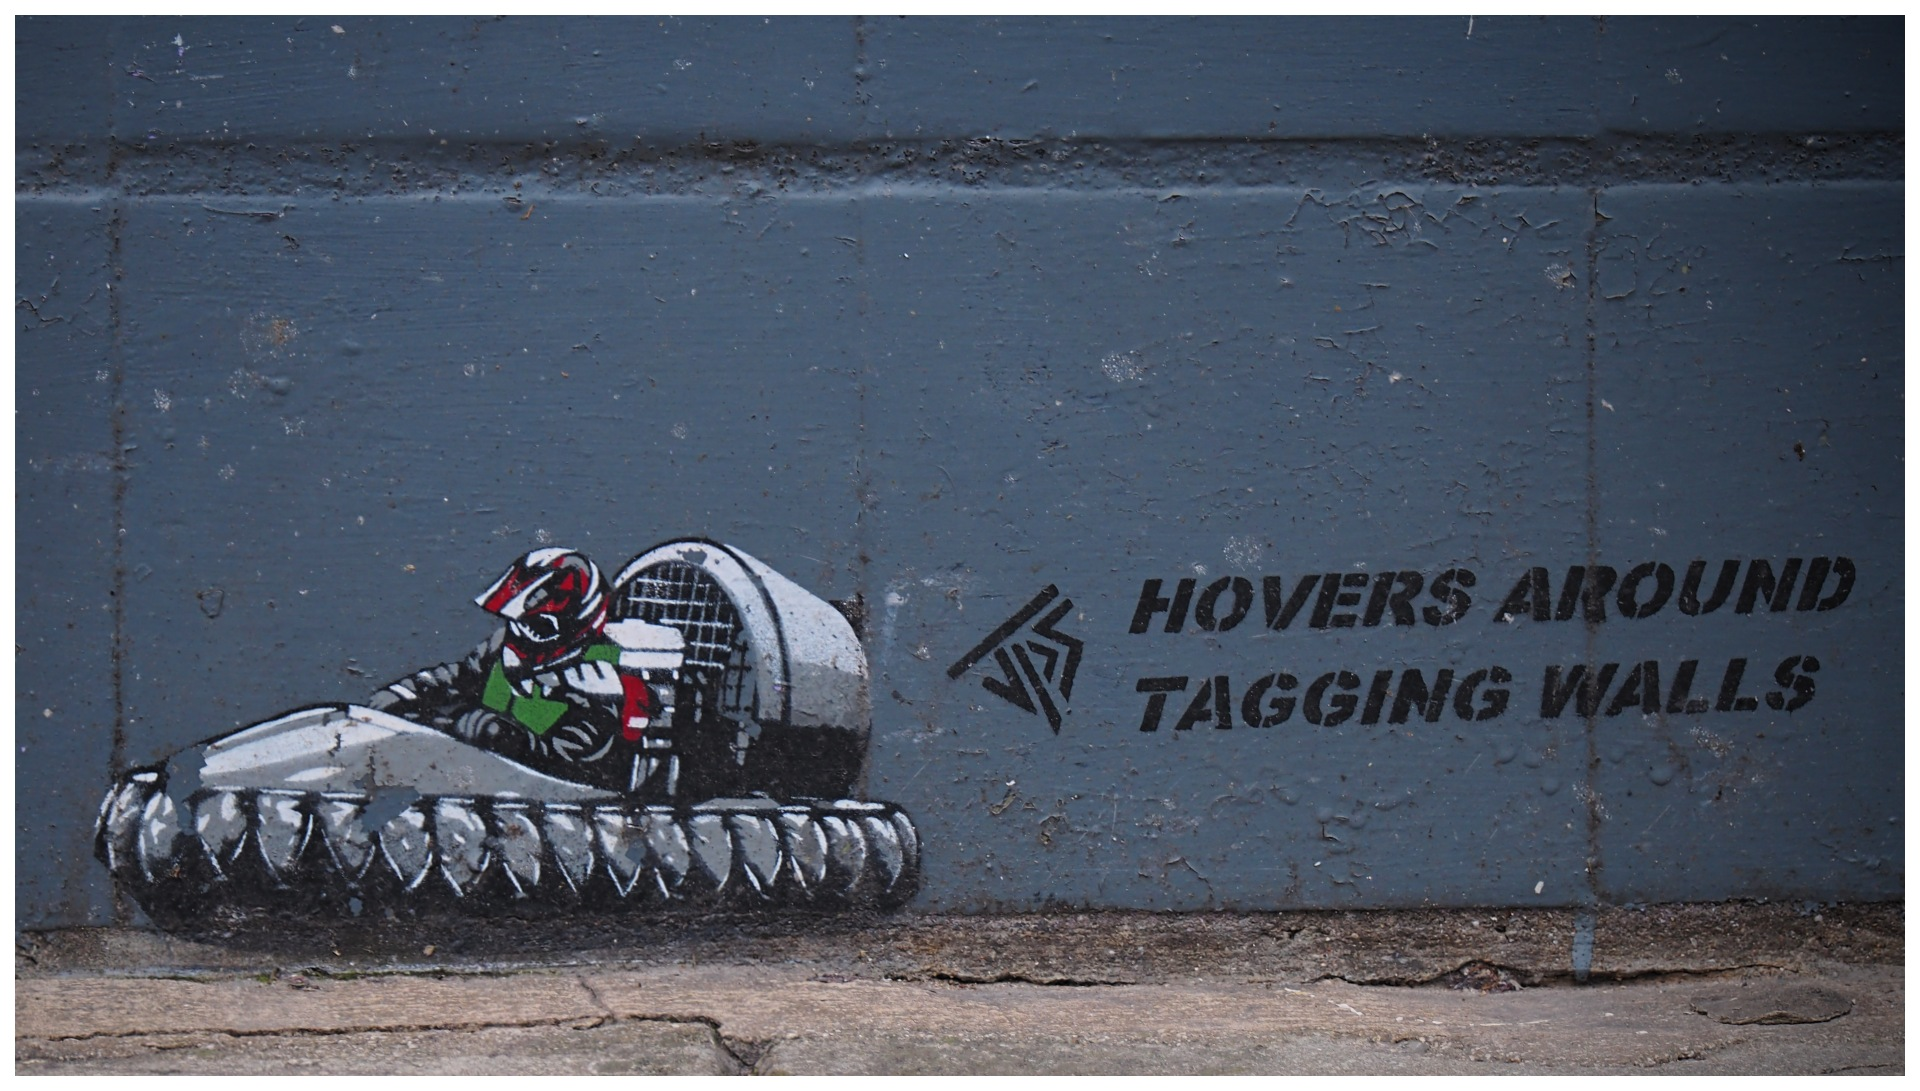 Hovers Around Tagging Walls by MorpheusDreaming